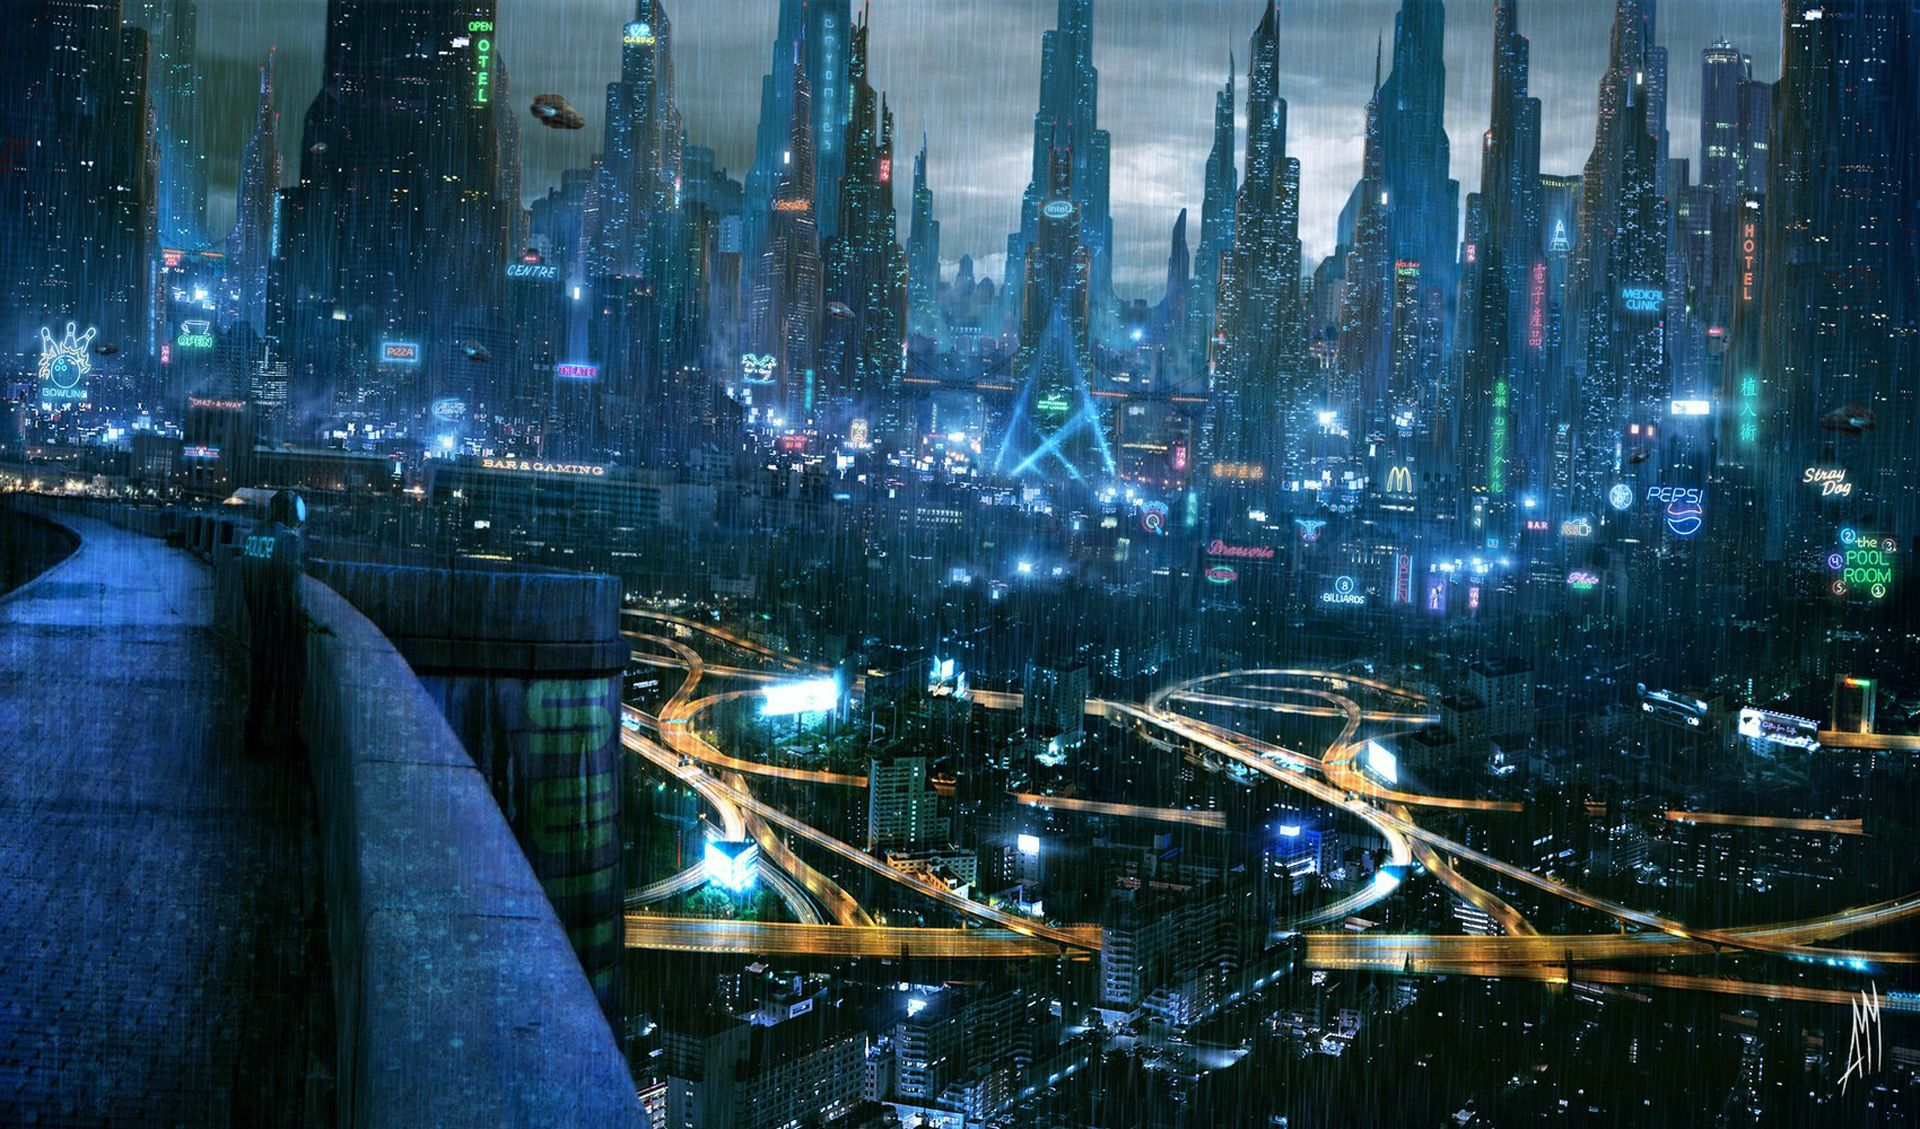 Awesome Sci-Fi wallpaper, High resolution : wallpapers